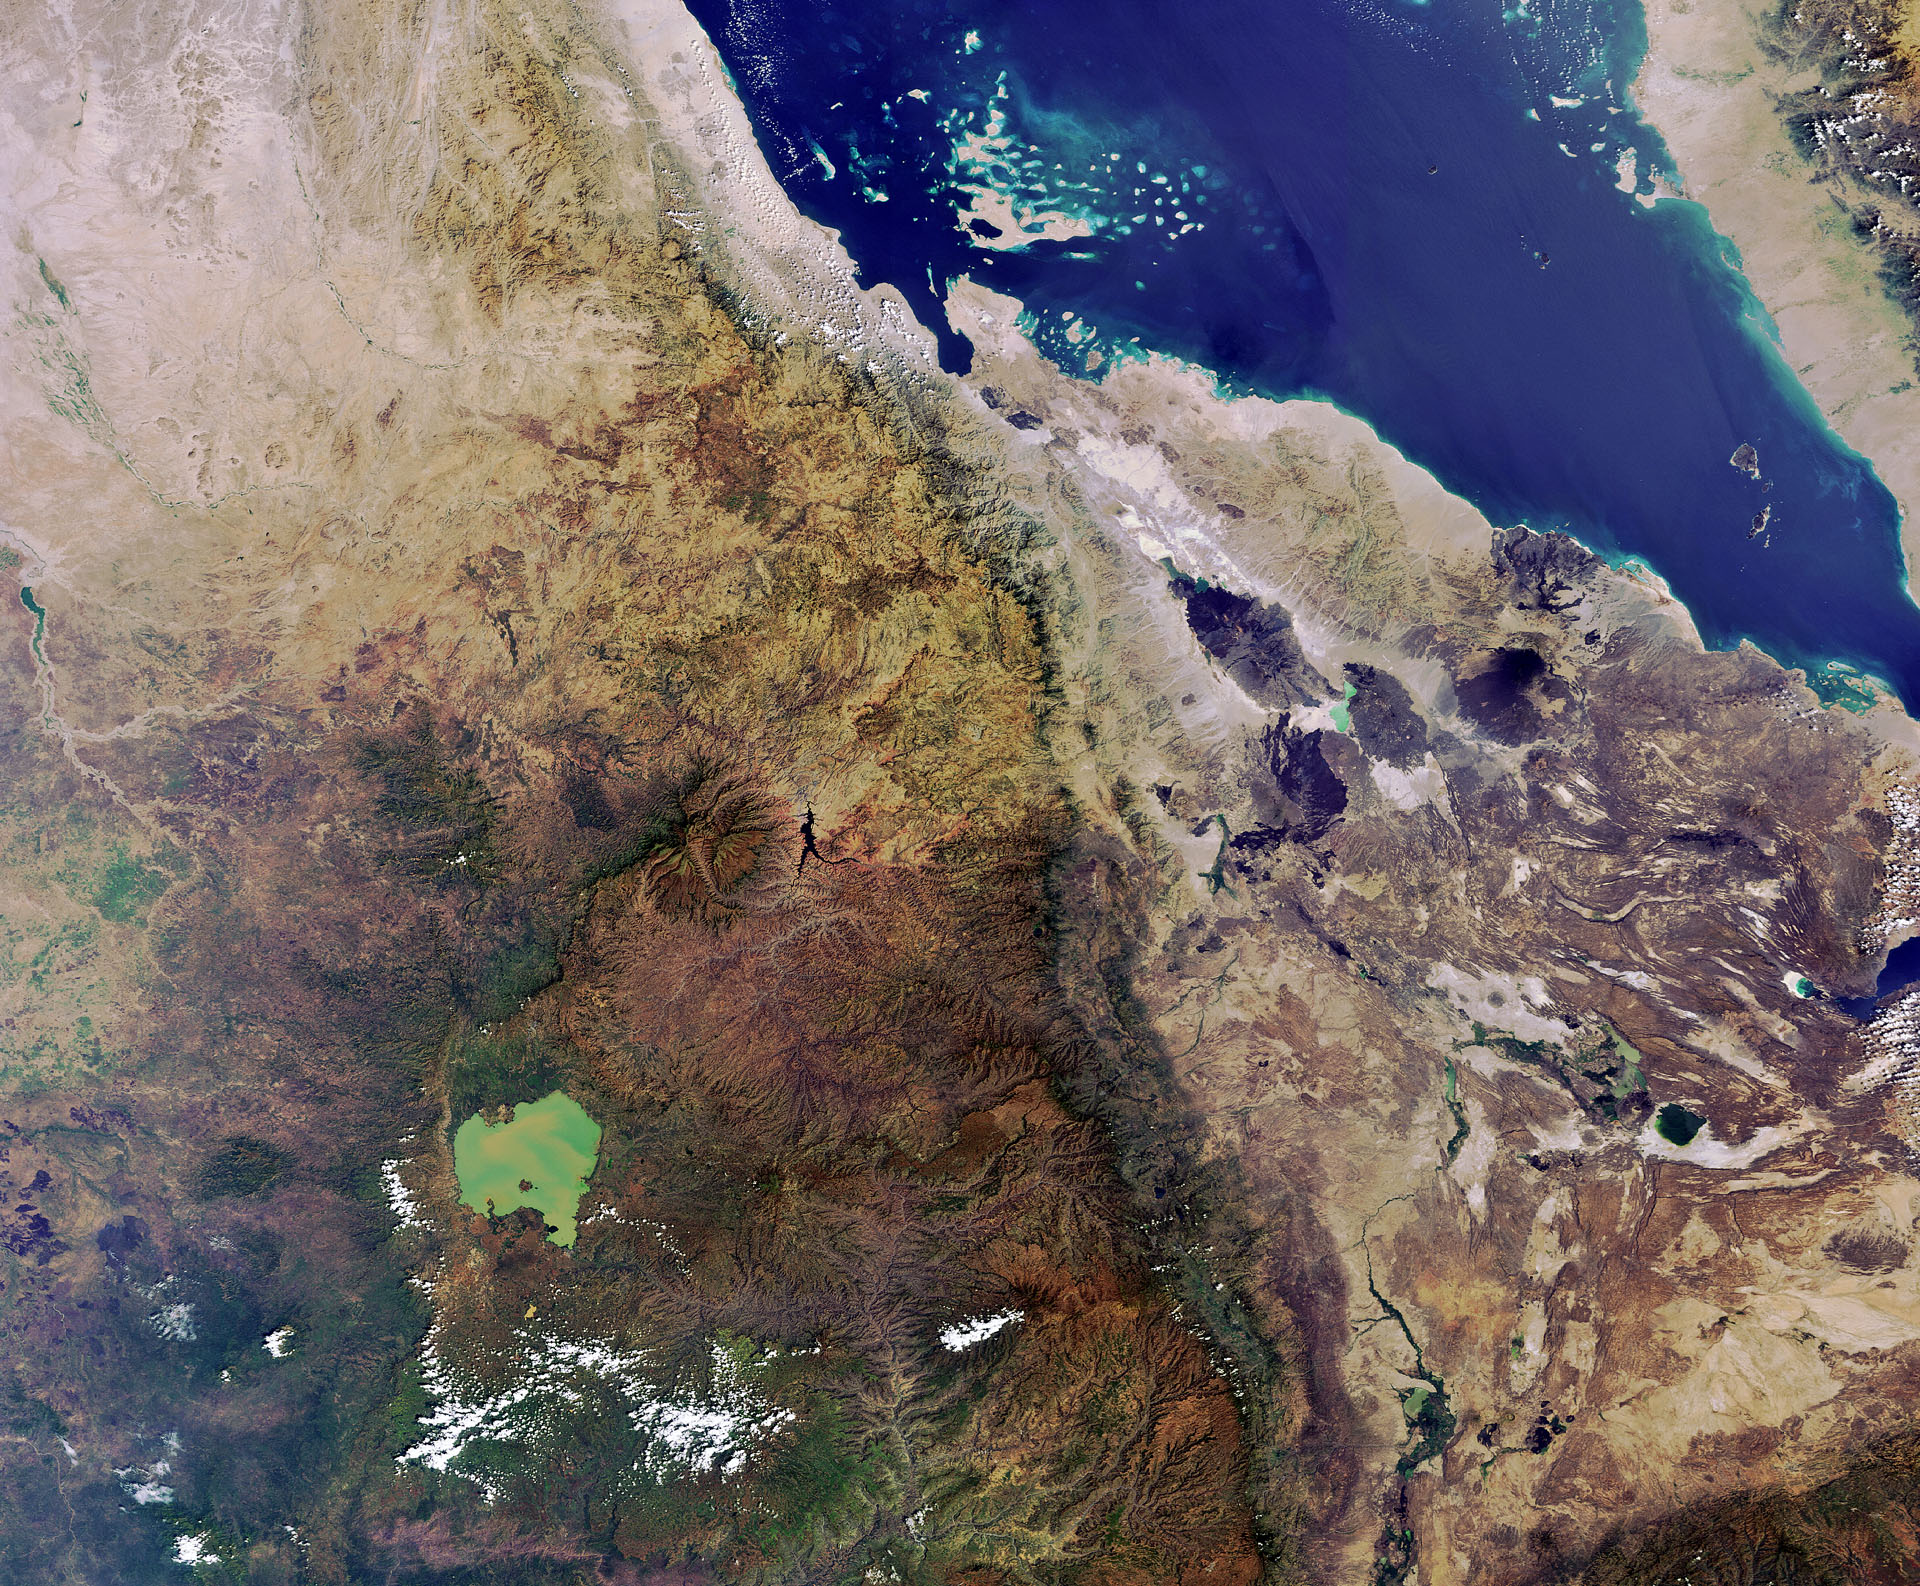 Strengthening technological capacities and information access for improving disaster risk reduction in the Horn of Africa (WP1283)